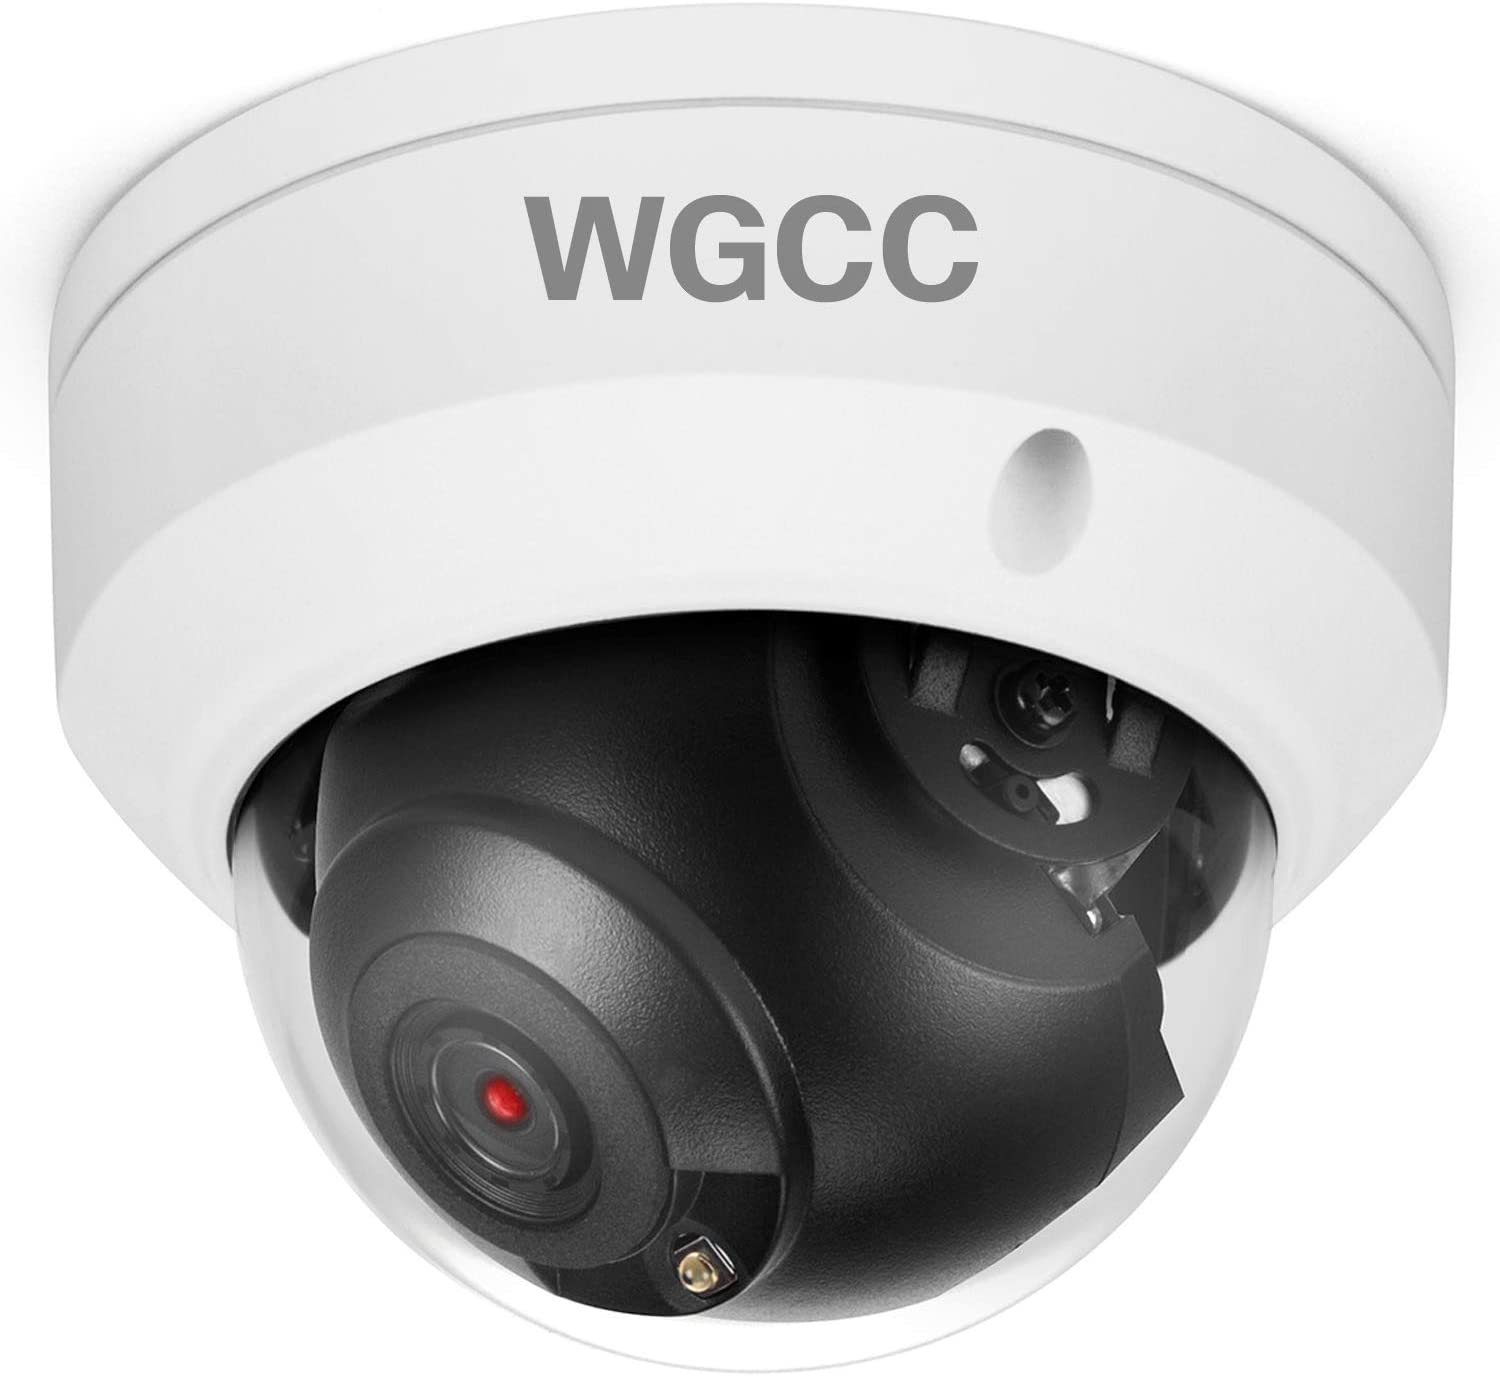 WGCC POE IP Camera Dome HD 4MP H.265 2.8MM Lens Onvif Outdoor Security Camera with 98ft IR Night Vision, Remote Viewing, IP67 Waterproof CCTV Camera for Outdoor and Indoor